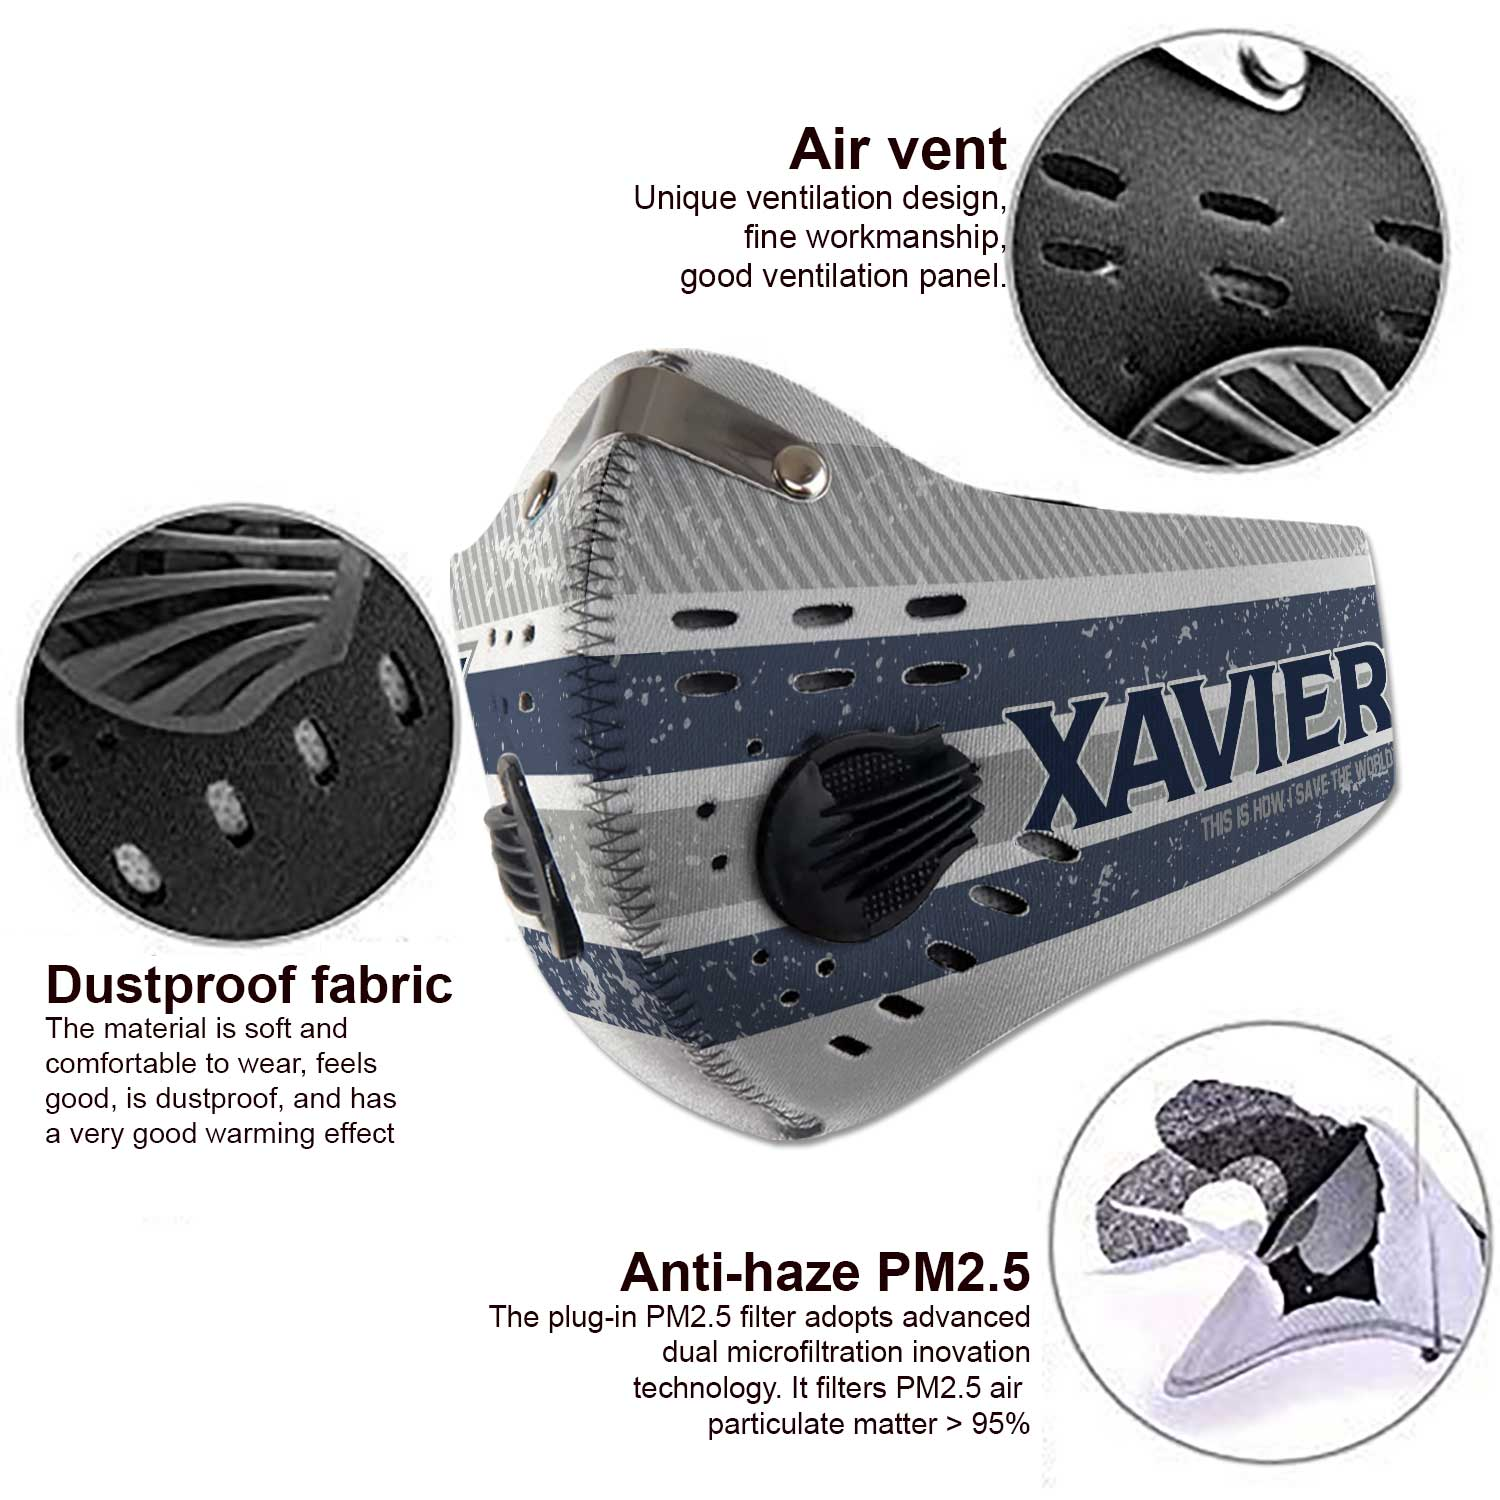 Xavier musketeers this is how i save the world carbon filter face mask 4